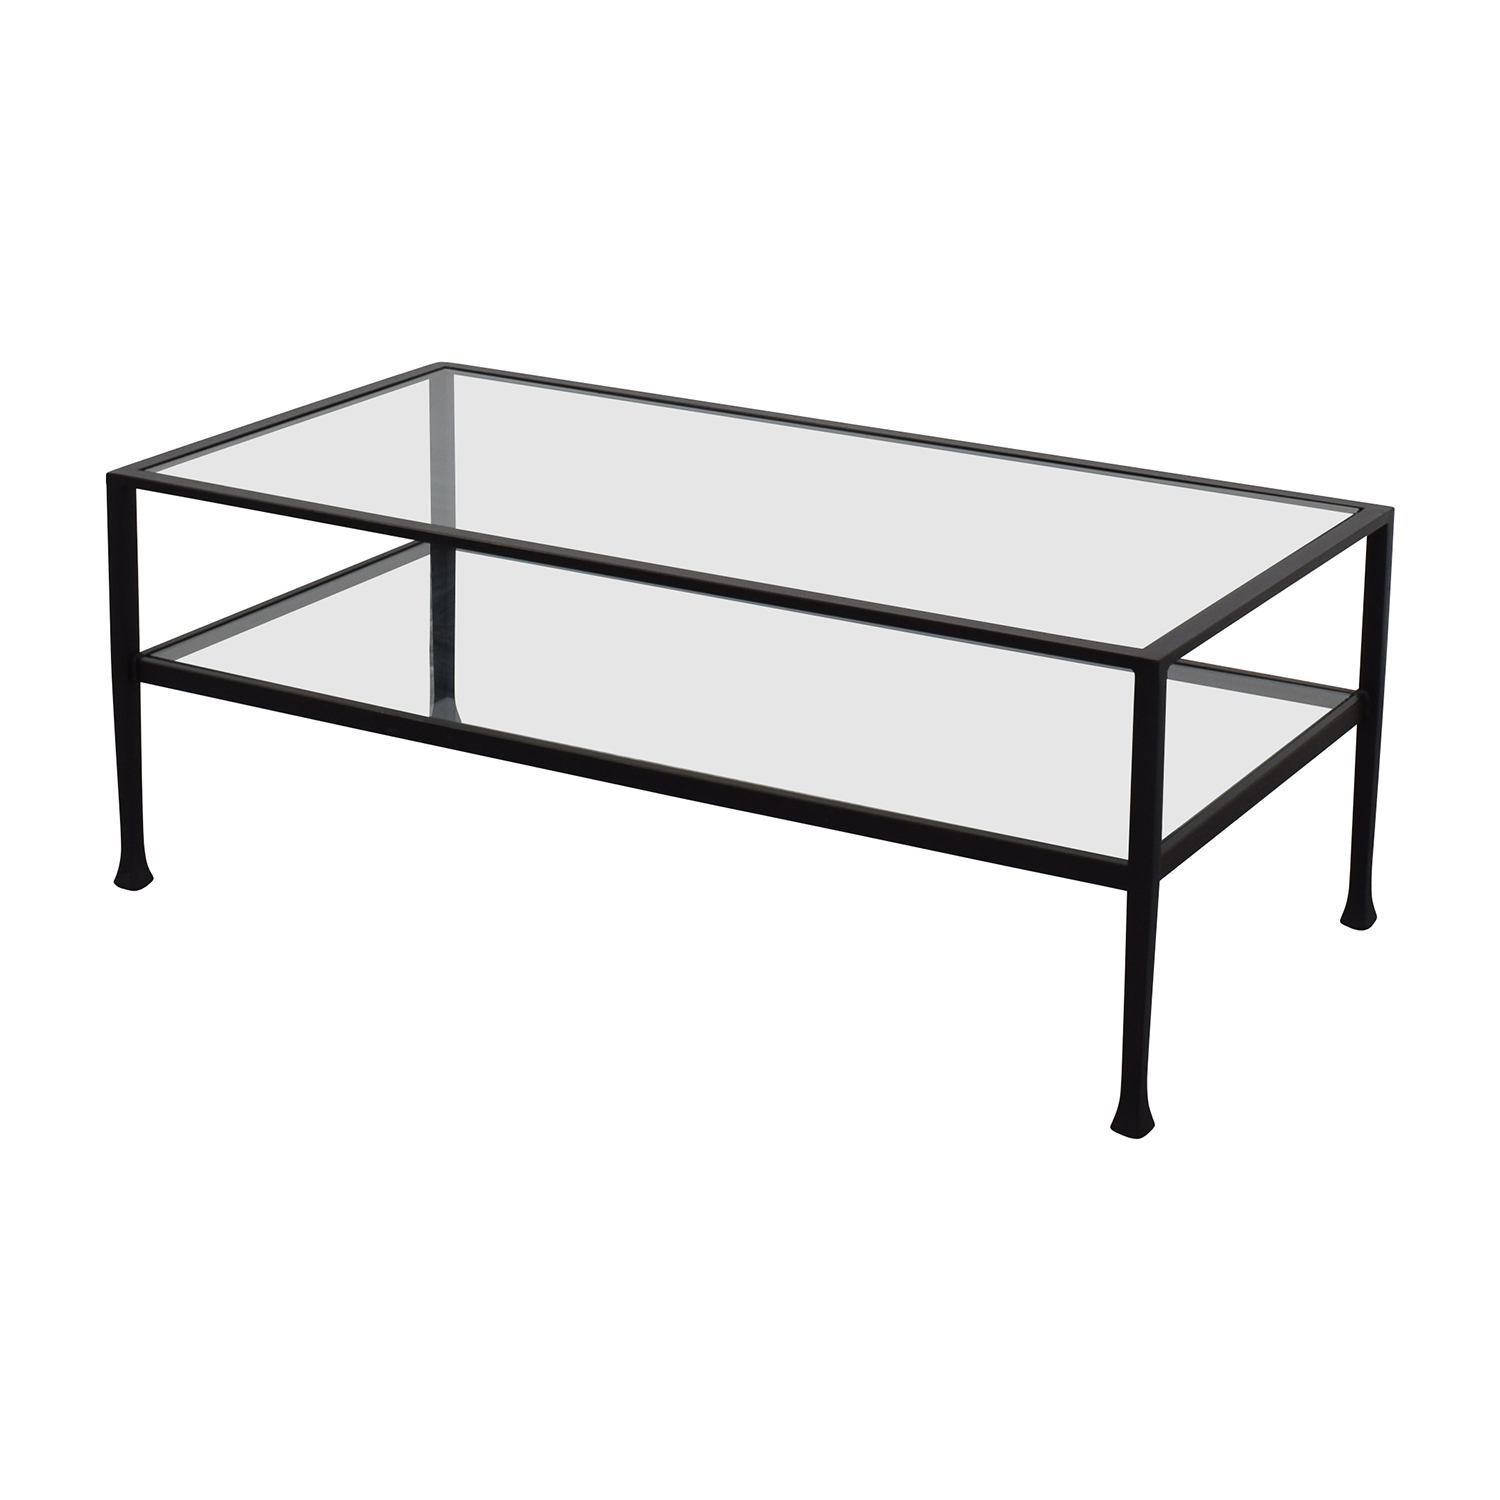 Pottery Parn Pottery Barn Tanner Rectangular Coffee Table nyc